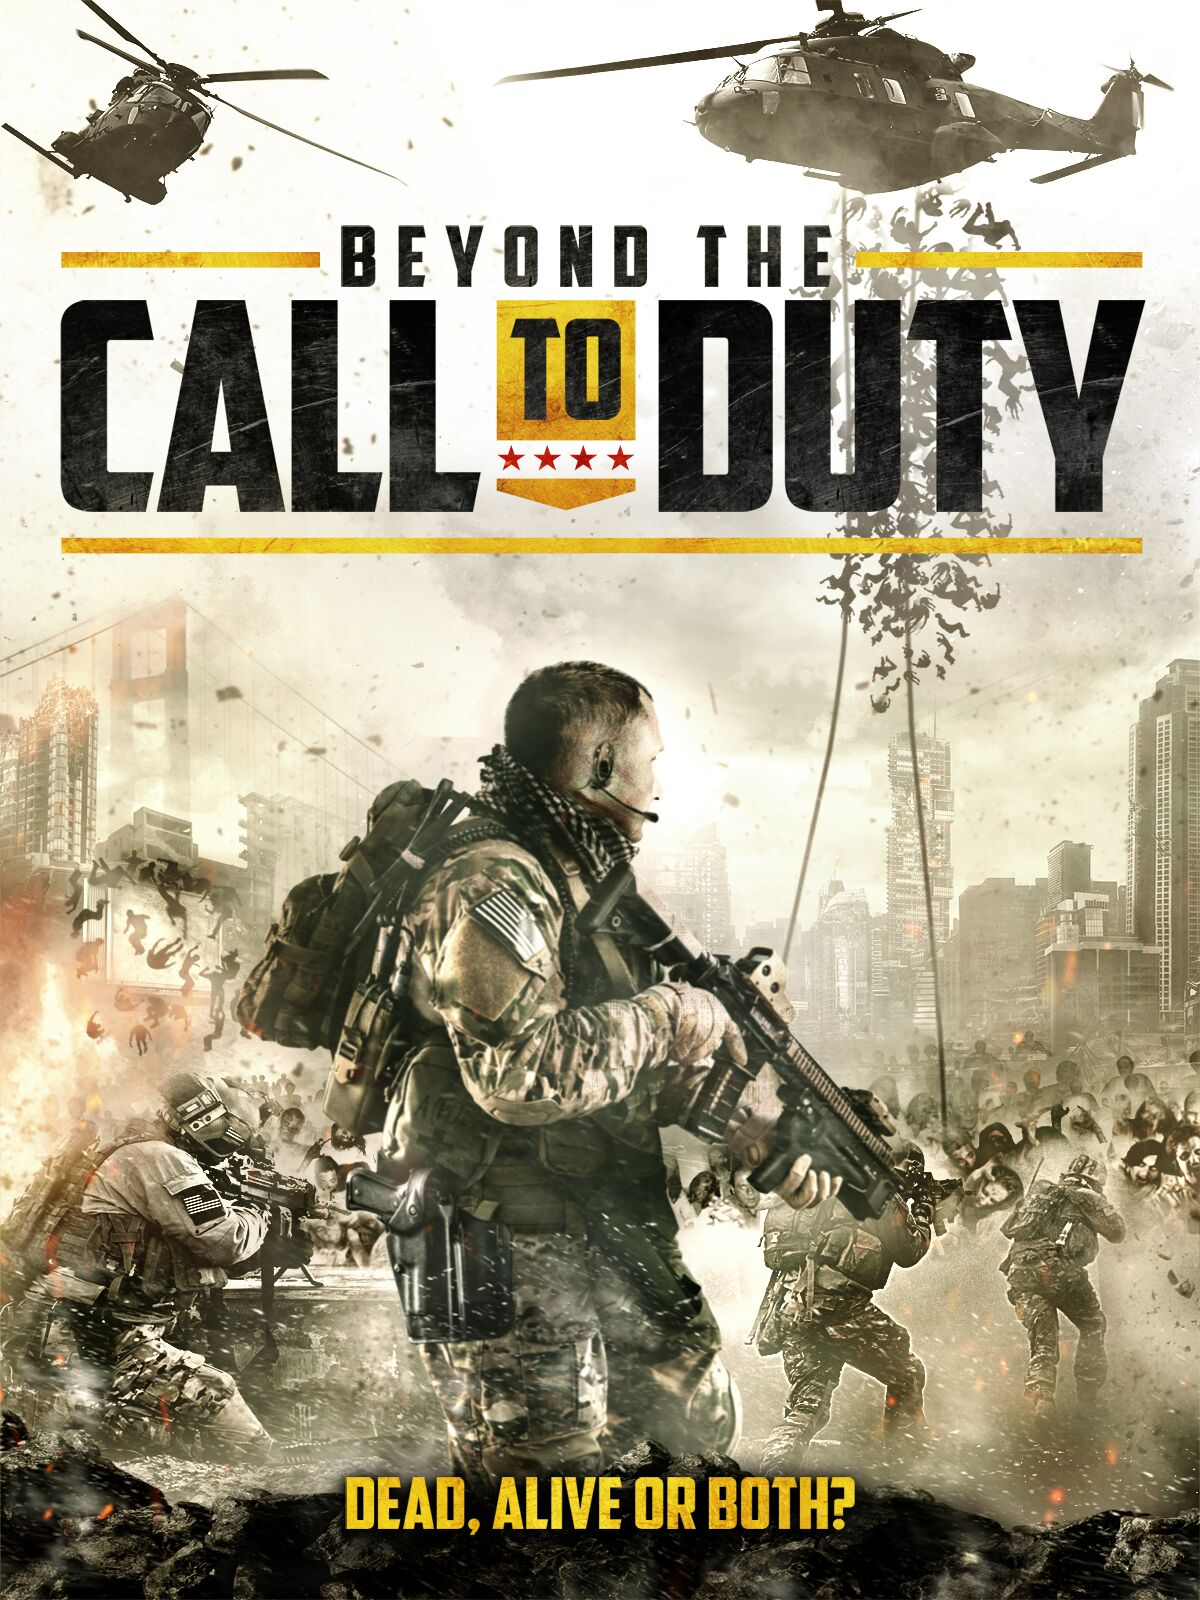 Download Filme Call of Duty Torrent 2021 Qualidade Hd